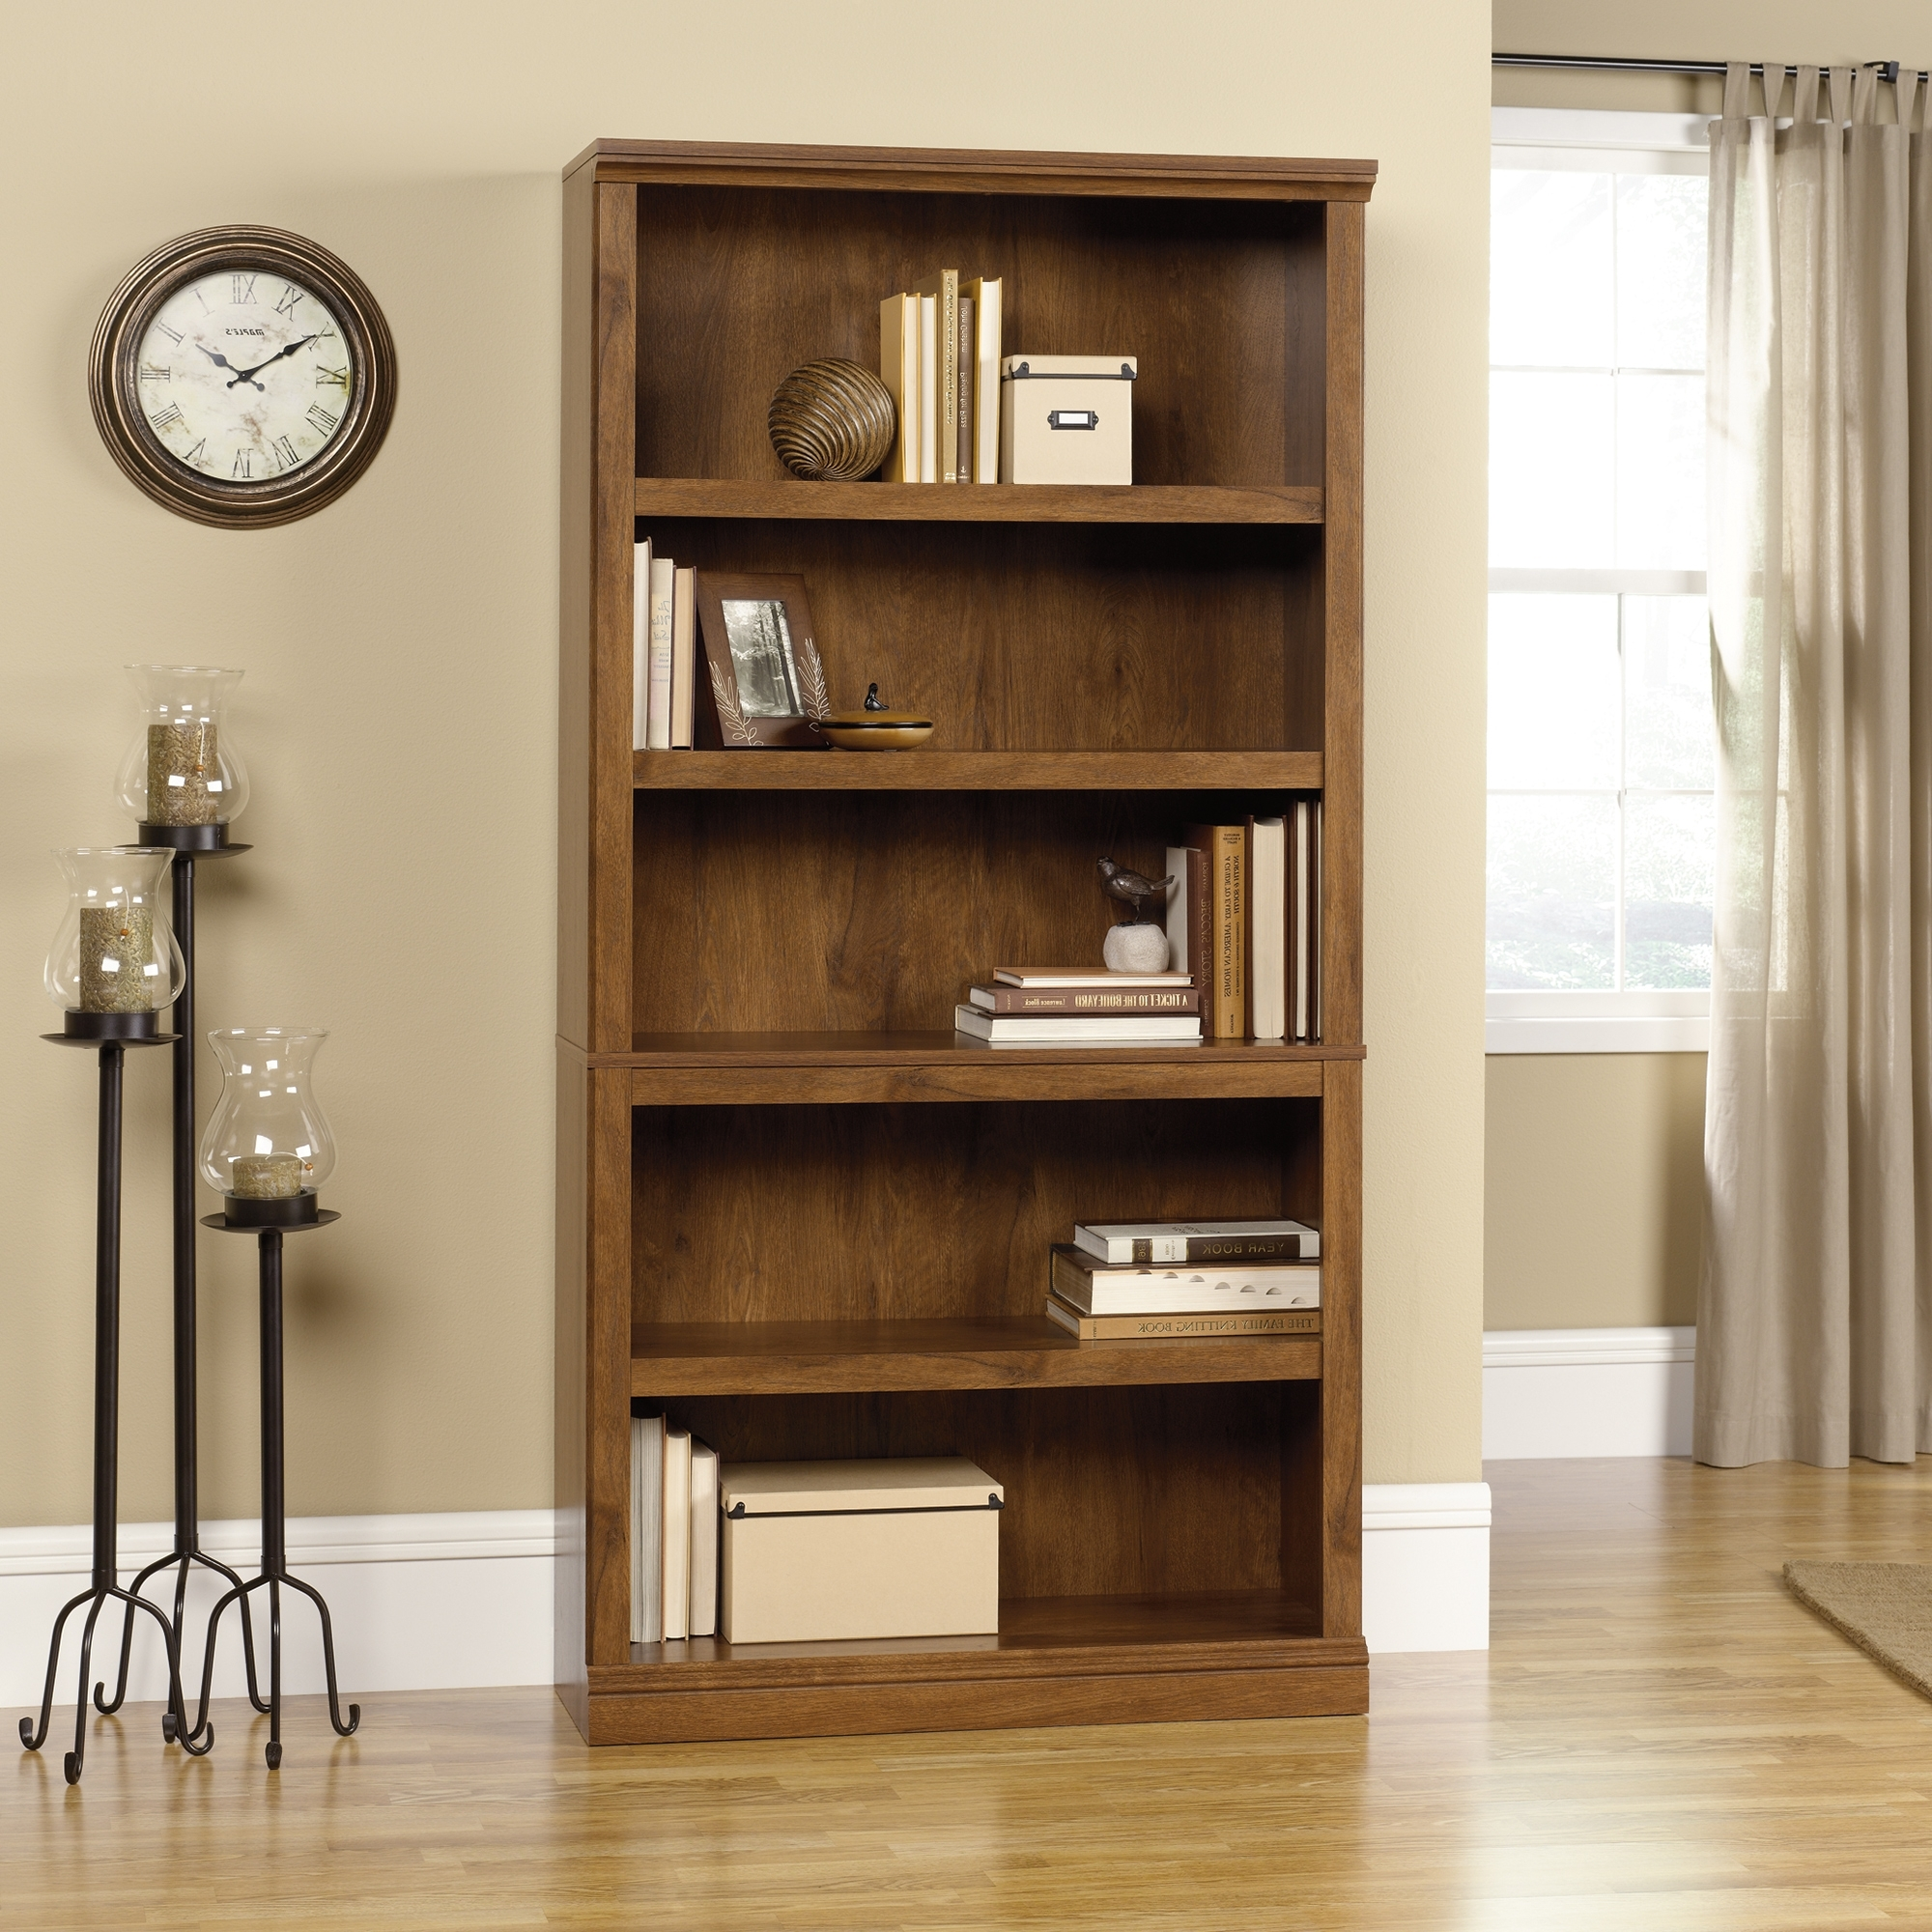 Favorite 36 Inch Wide Bookcases Regarding Bookcase: Organize Your Books With Best Sauder Bookcase Idea (View 9 of 15)